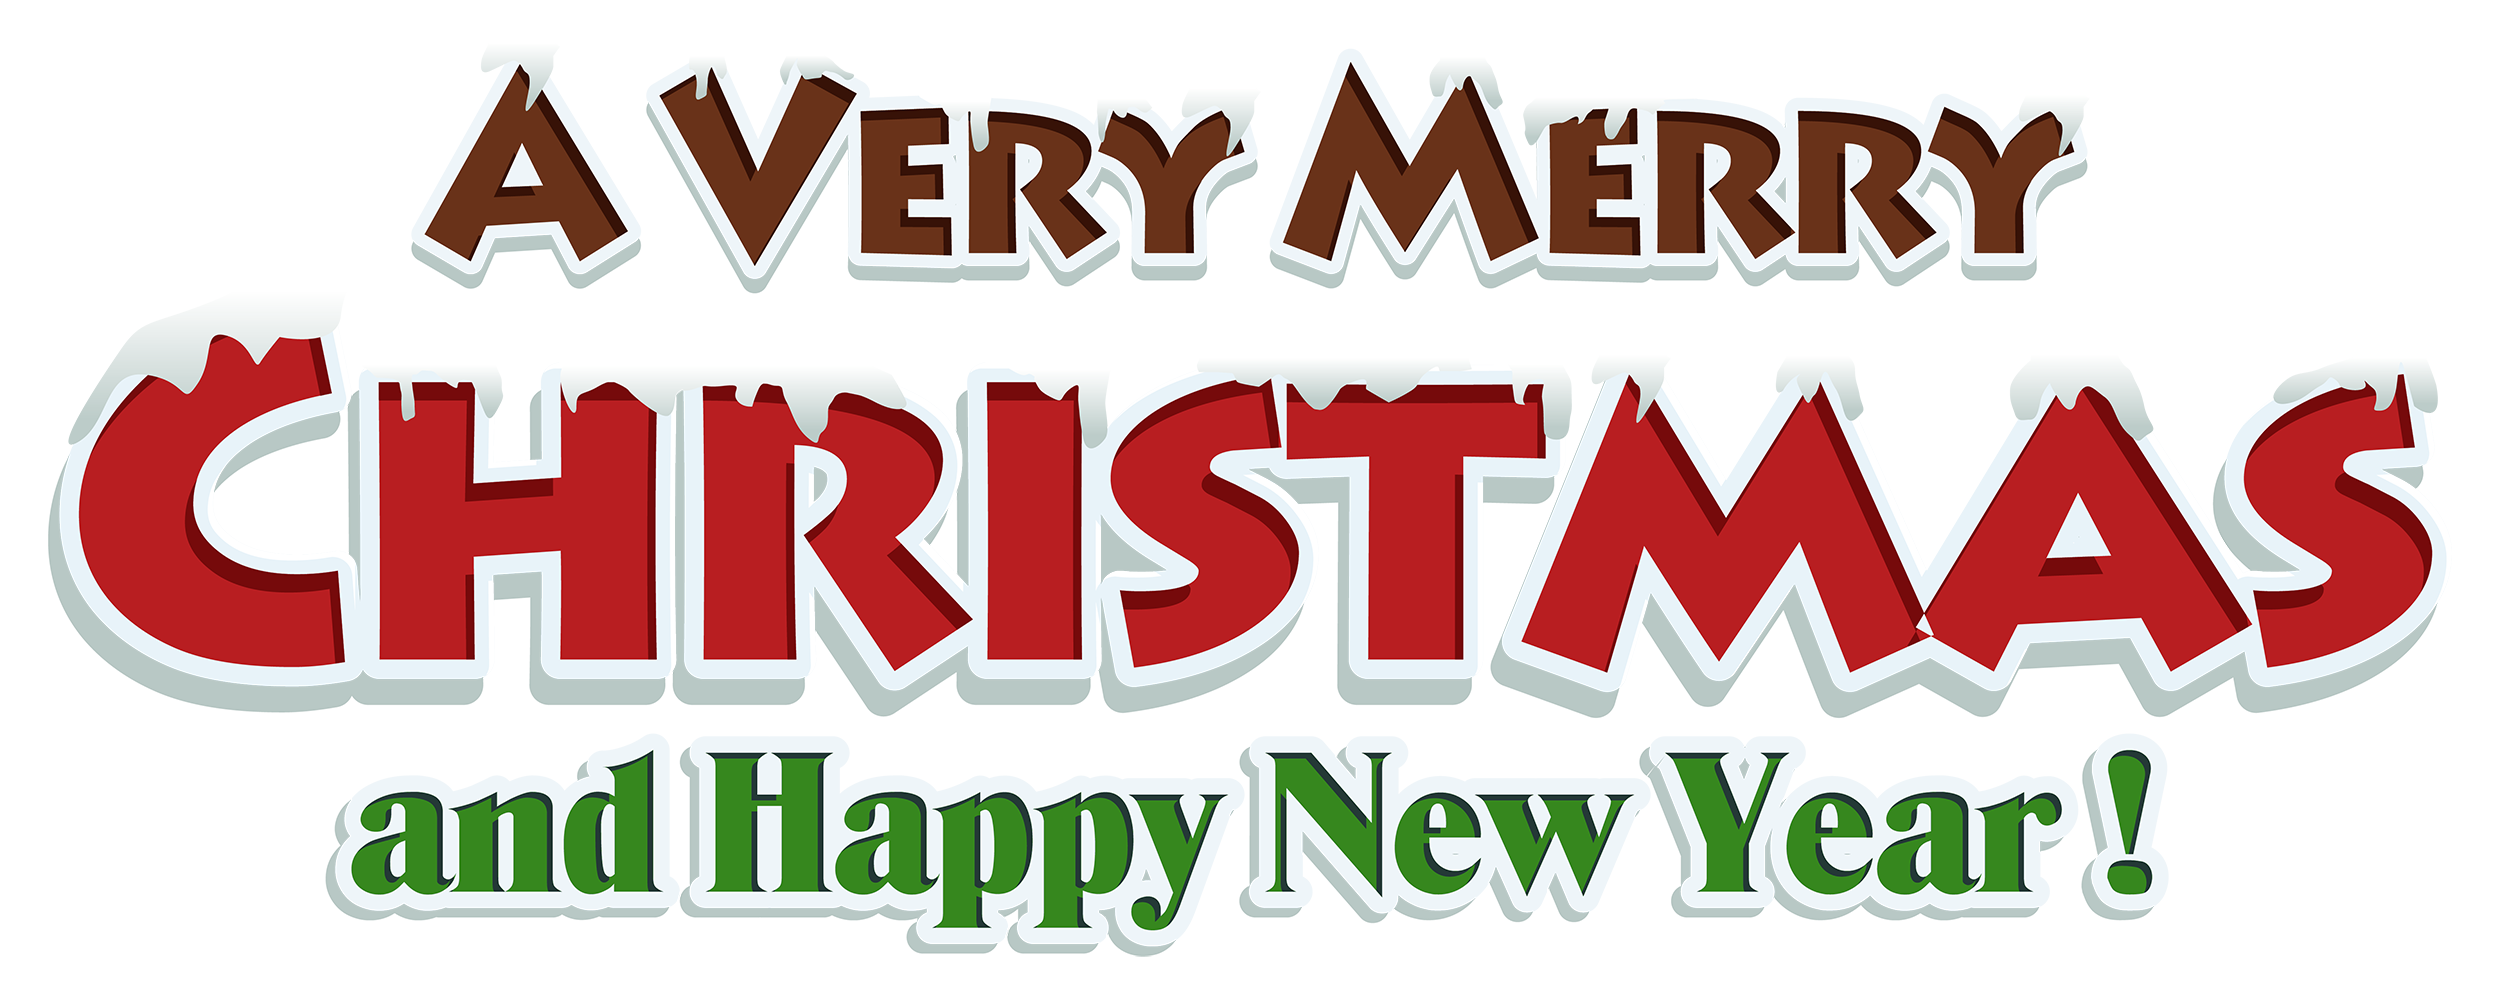 Have a very from. Stamp clipart merry christmas